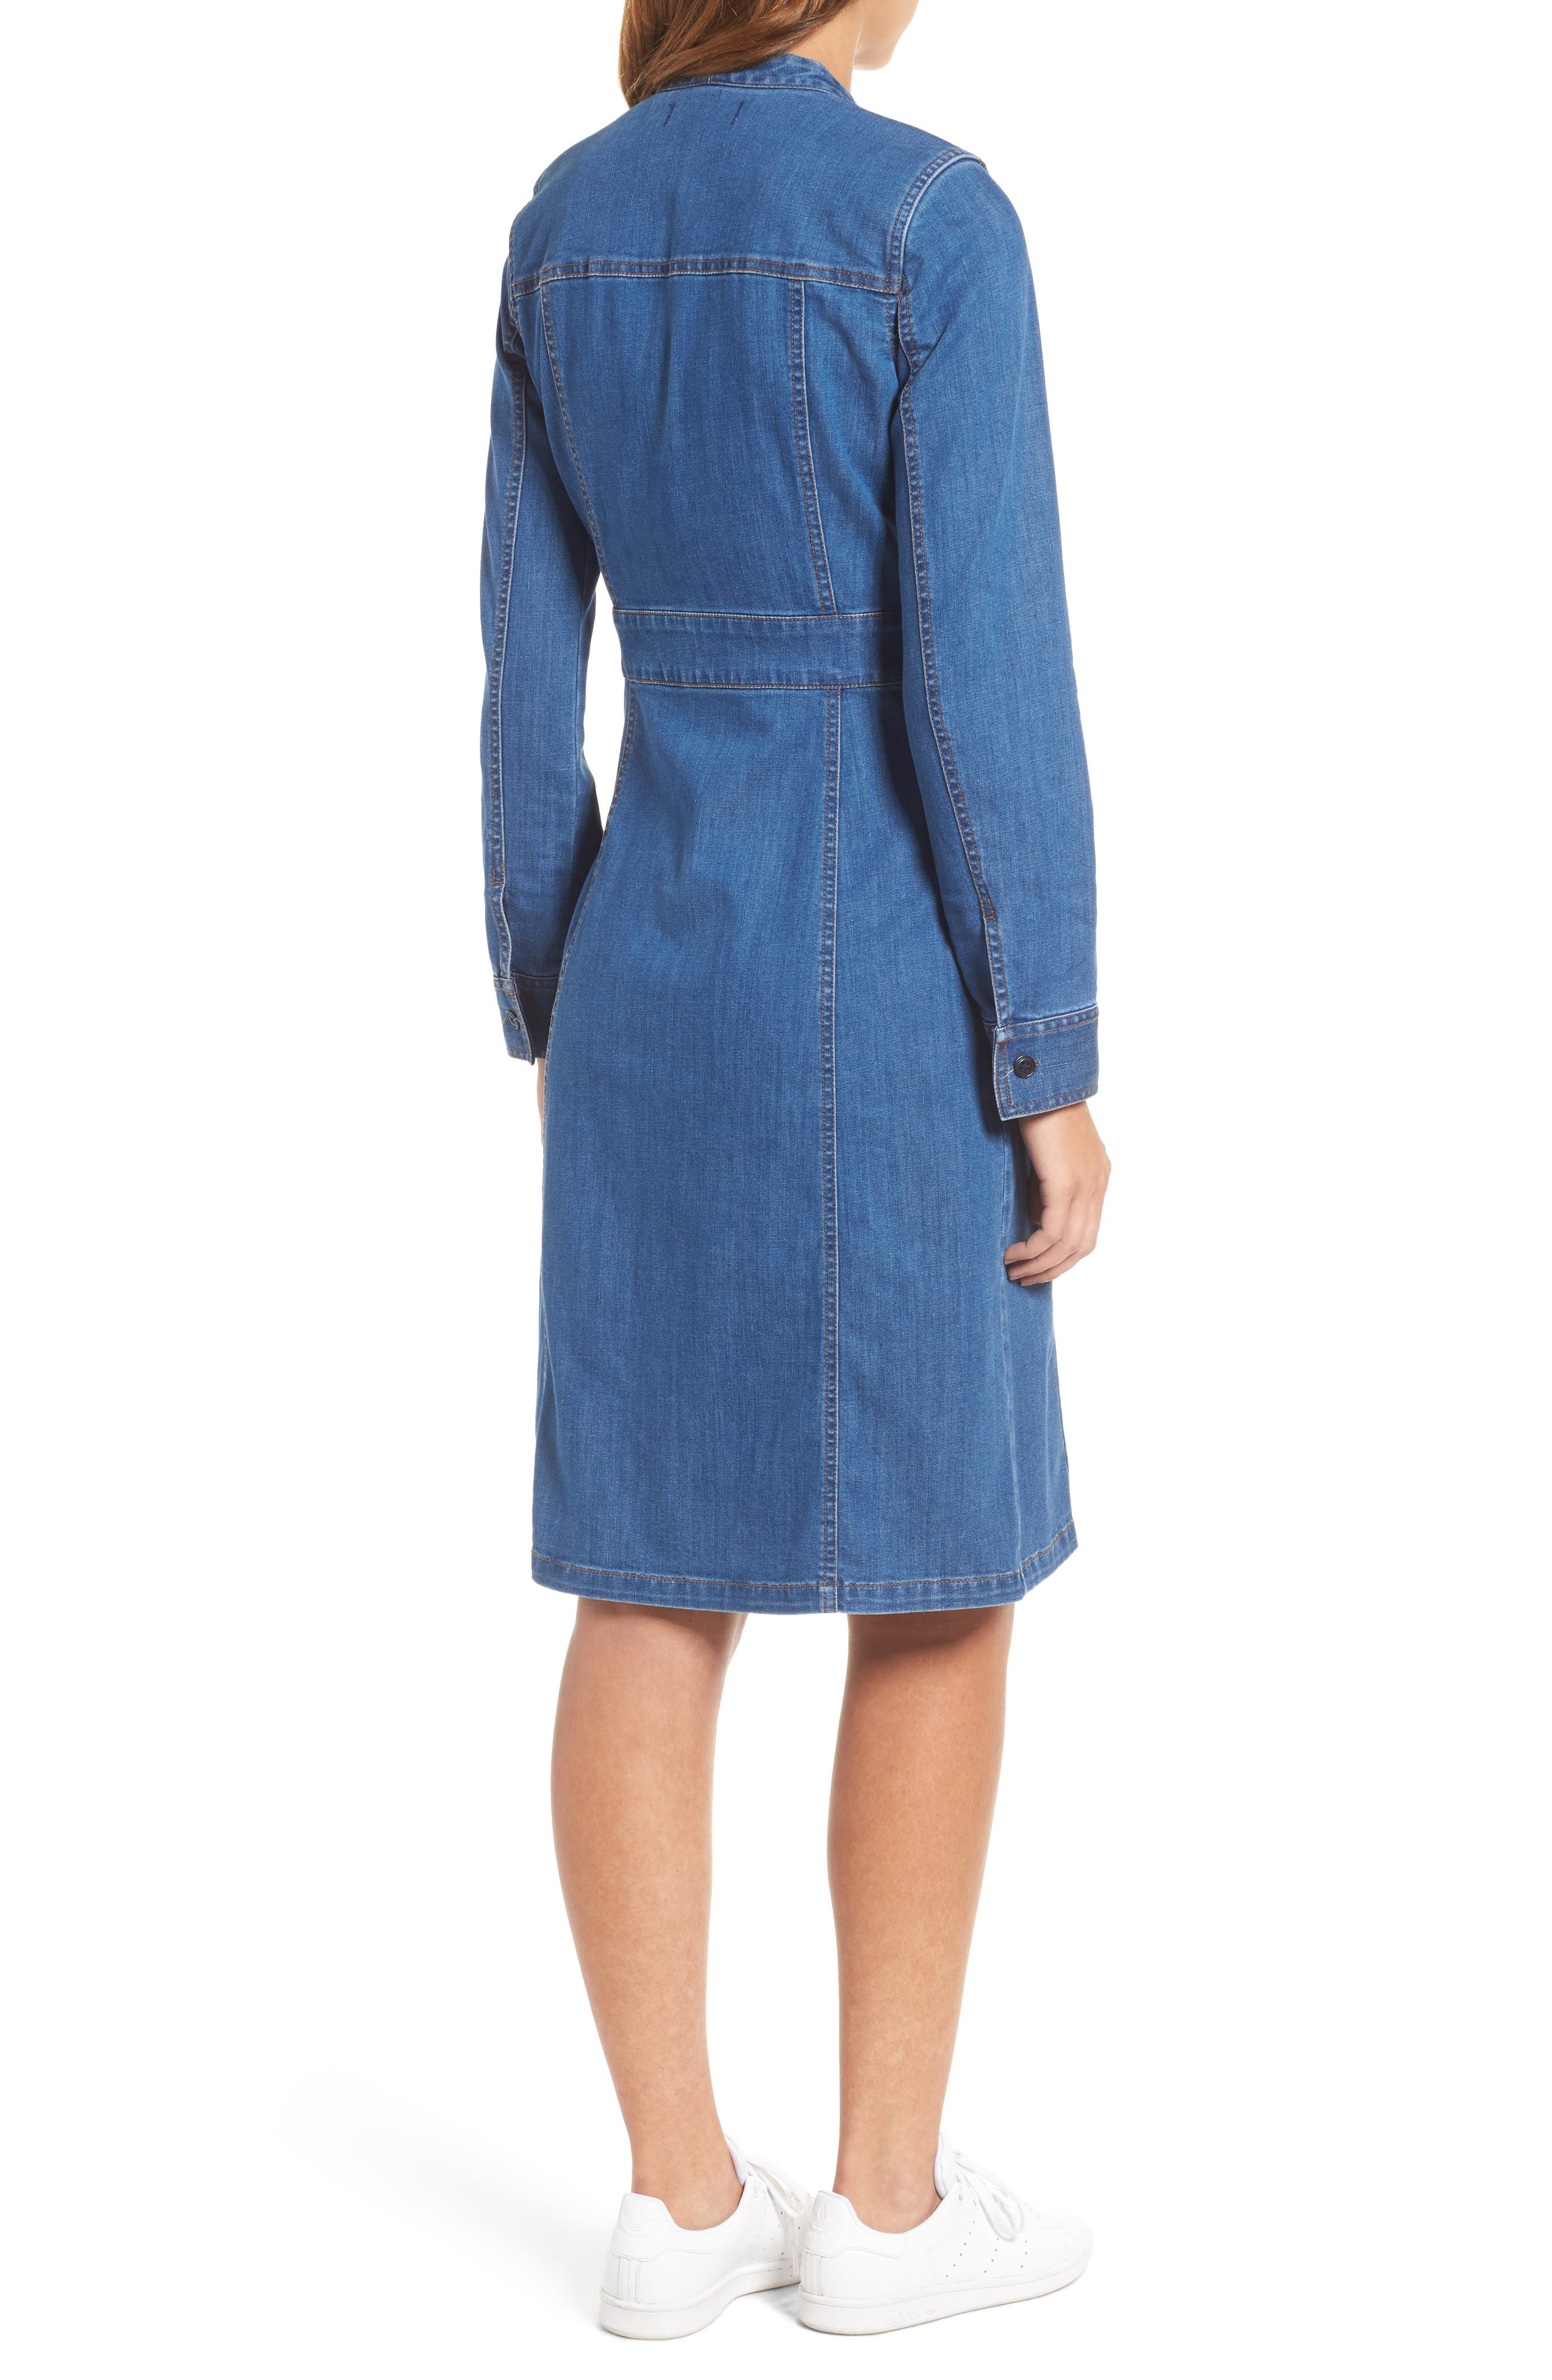 MADEWELL, Denim Tie Neck Shirtdress, Alternate thumbnail 2, color, 400